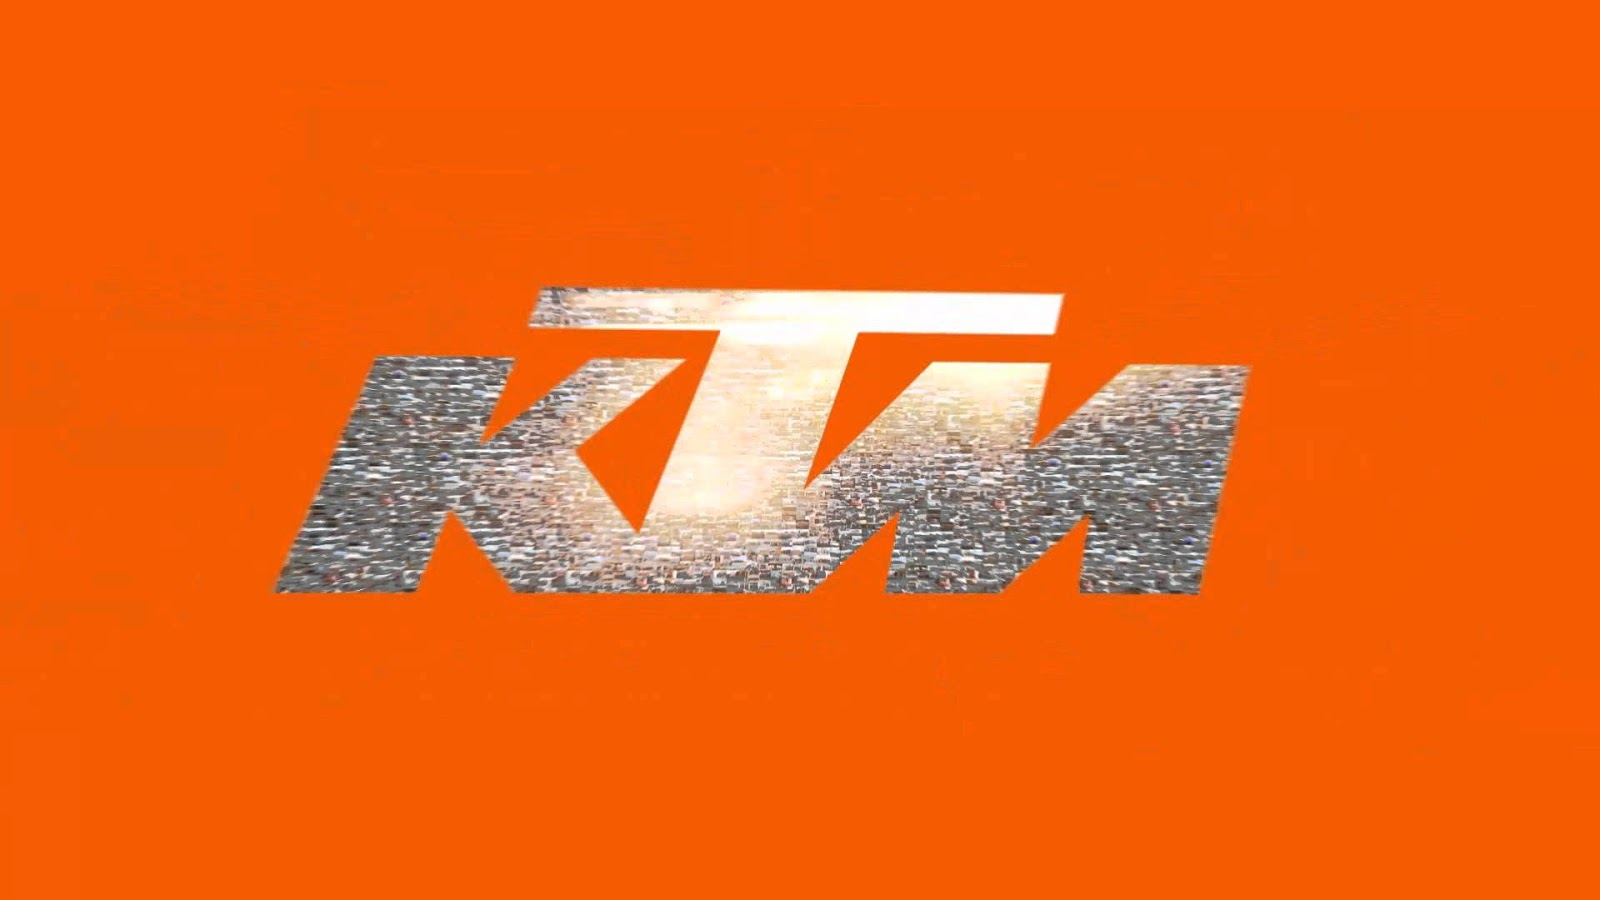 Iphone wallpaper ktm - Images For 2016 Ktm Rc 390 Hd All Latest New Amp Old Car